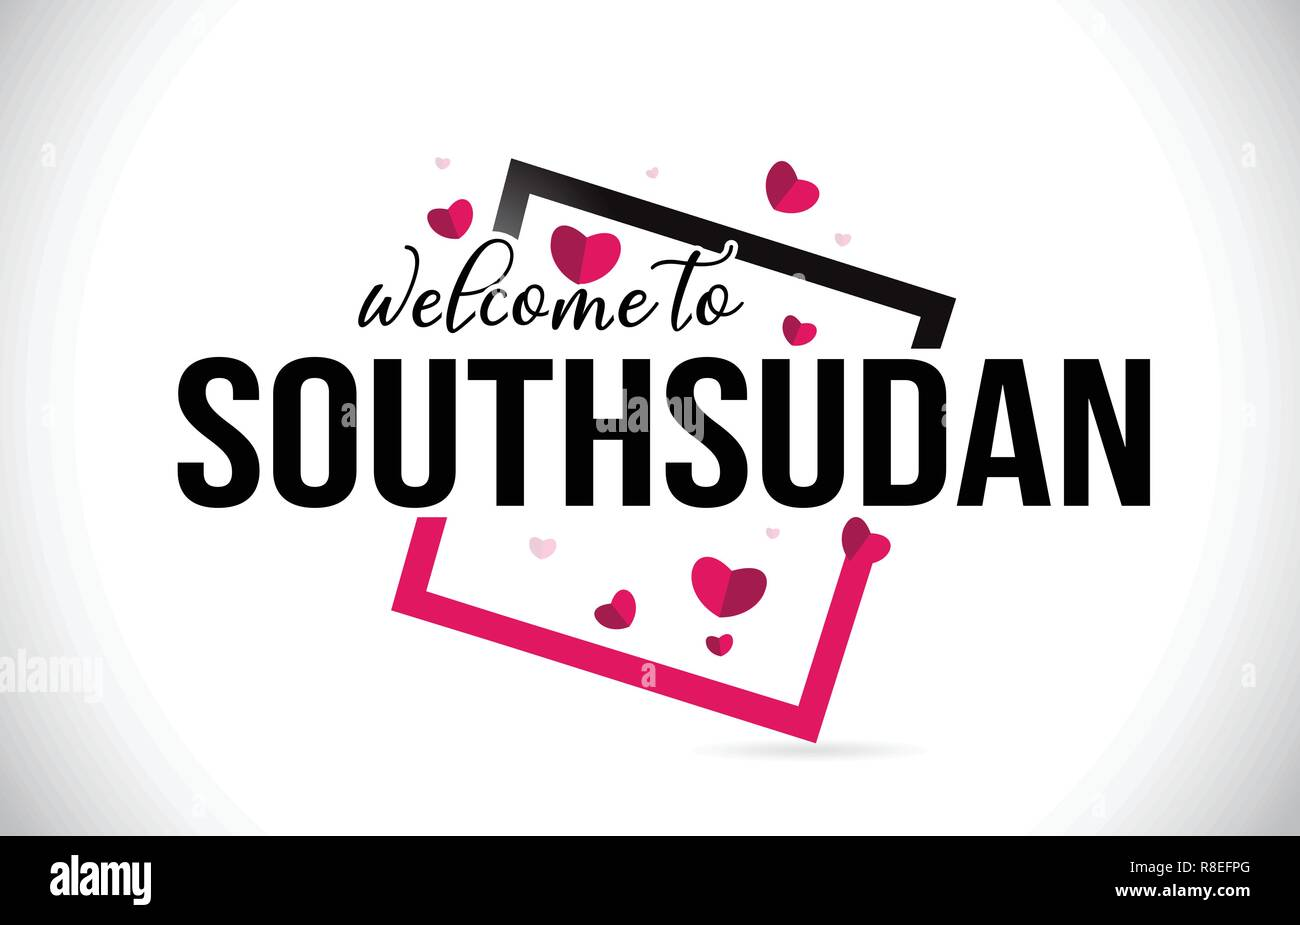 SouthSudan Welcome To Word Text with Handwritten Font and  Red Hearts Square Design Illustration Vector. - Stock Image